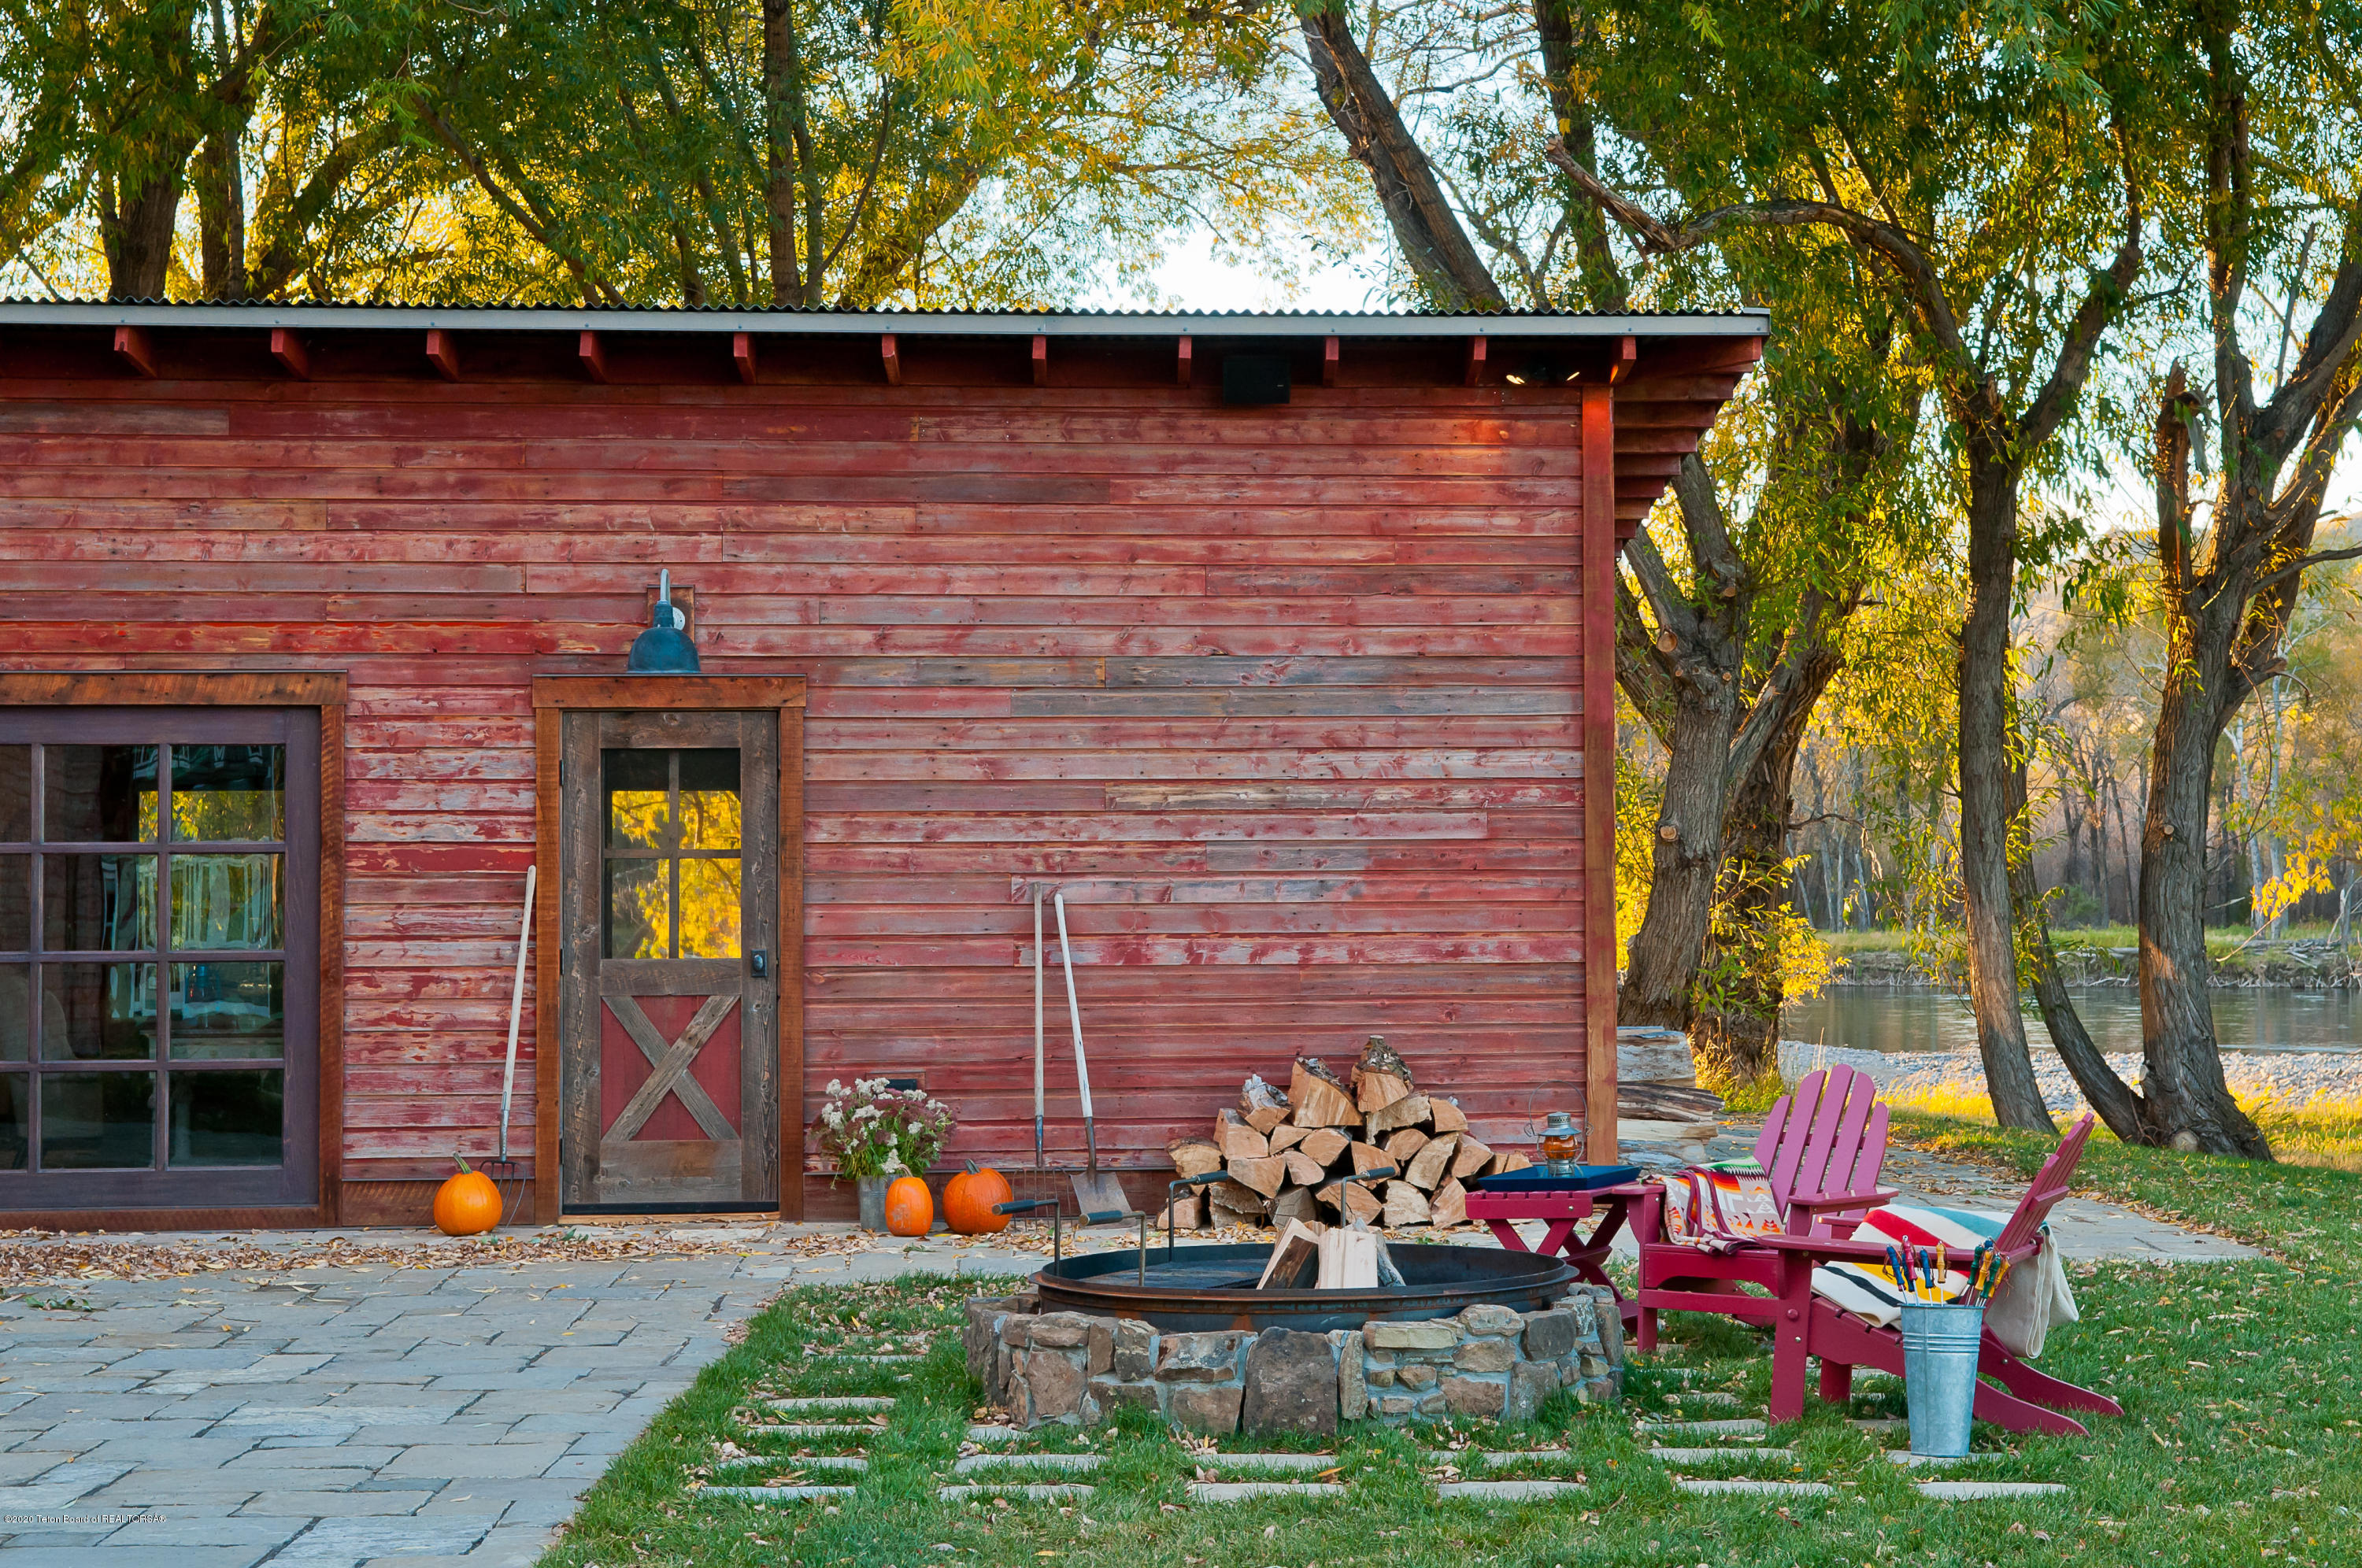 5783 US-89, LIVINGSTON, Montana 59047, 5 Bedrooms Bedrooms, ,5 BathroomsBathrooms,Farm And Agriculture,For Sale,5783 US-89,20-1381